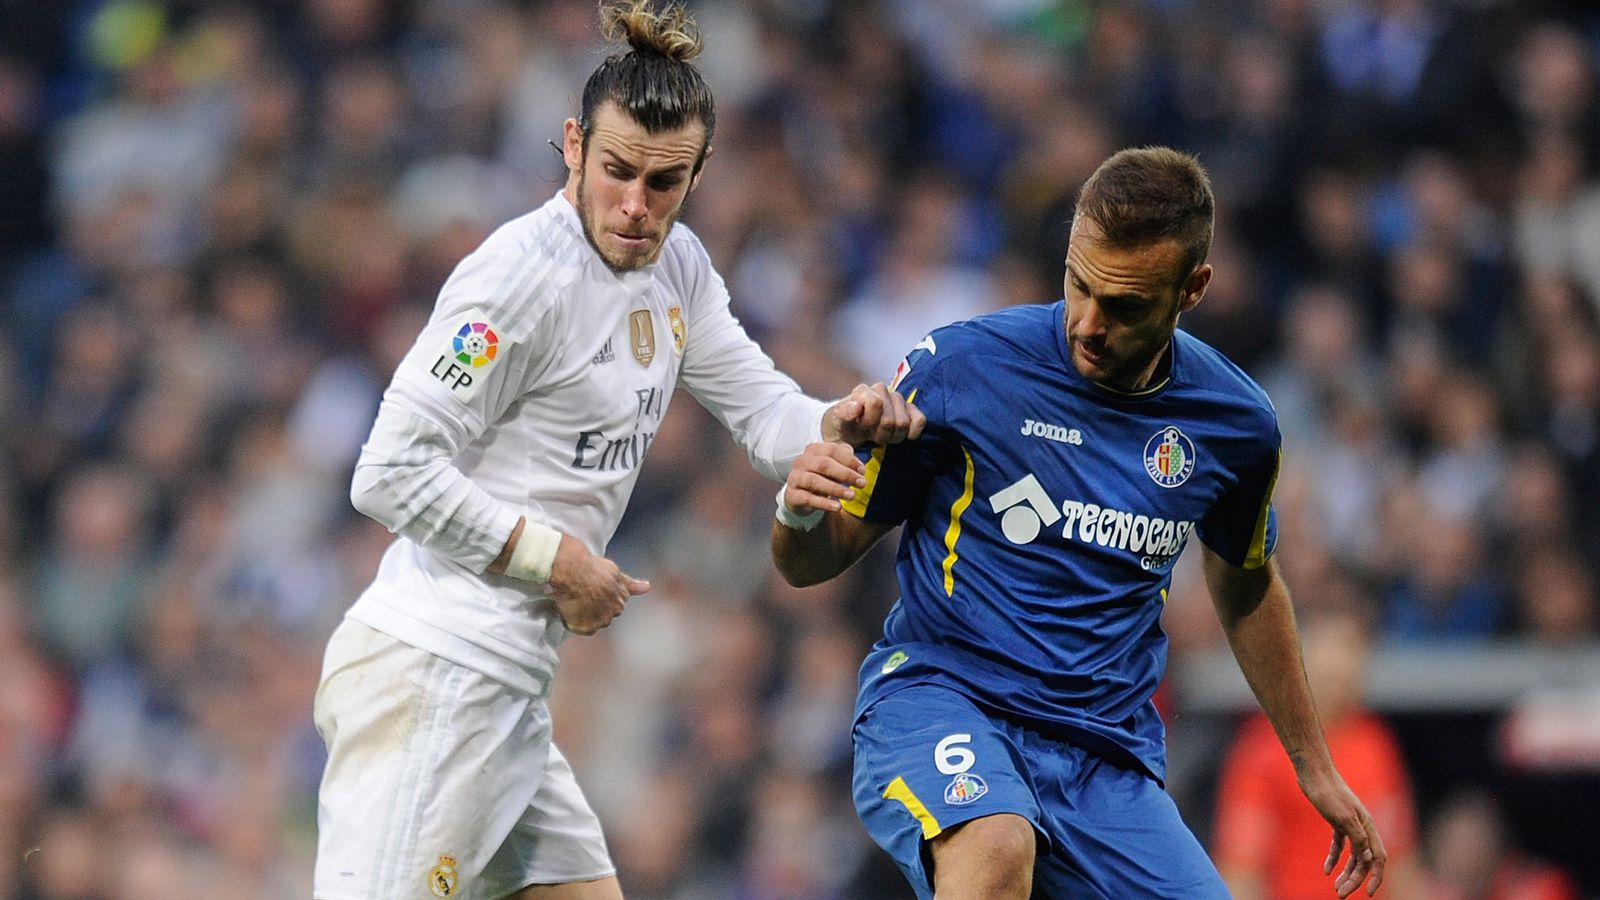 Live Stream Real Madrid Vs Getafe: Real Madrid Vs. Getafe 2016 Live Stream: Time, TV Schedule